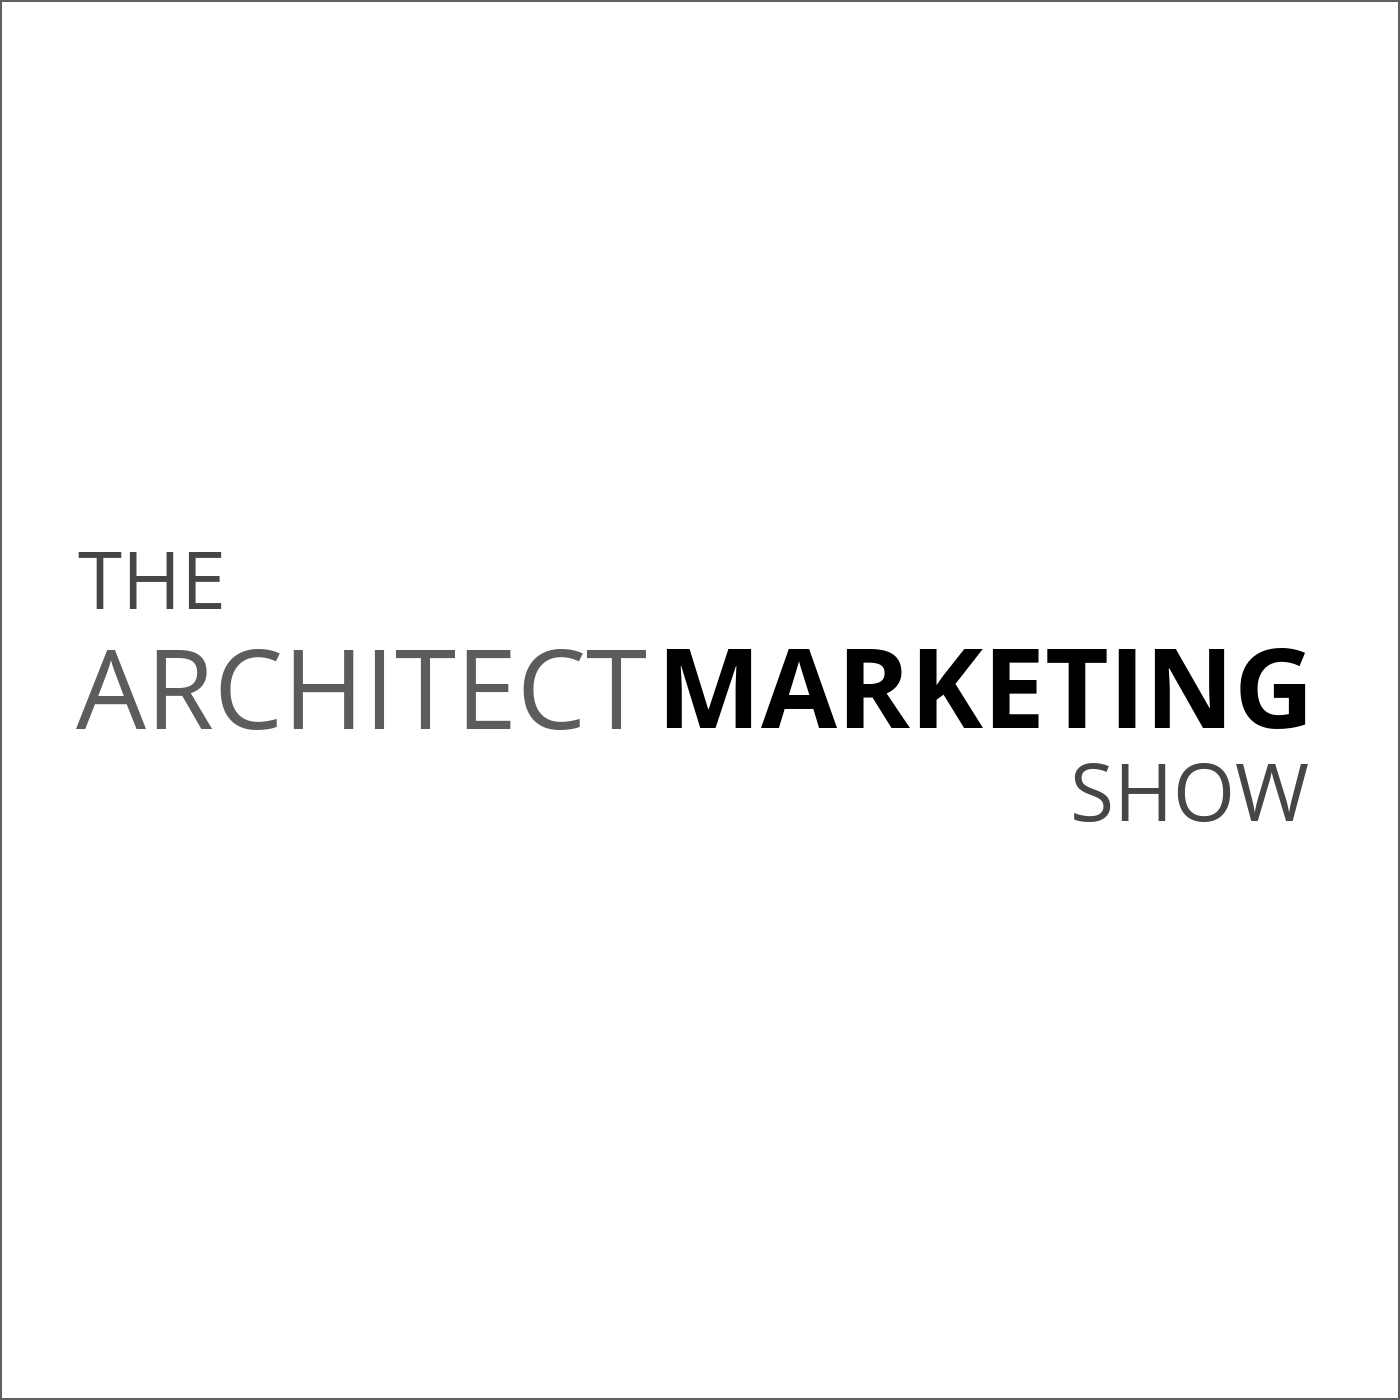 The Architect Marketing Show